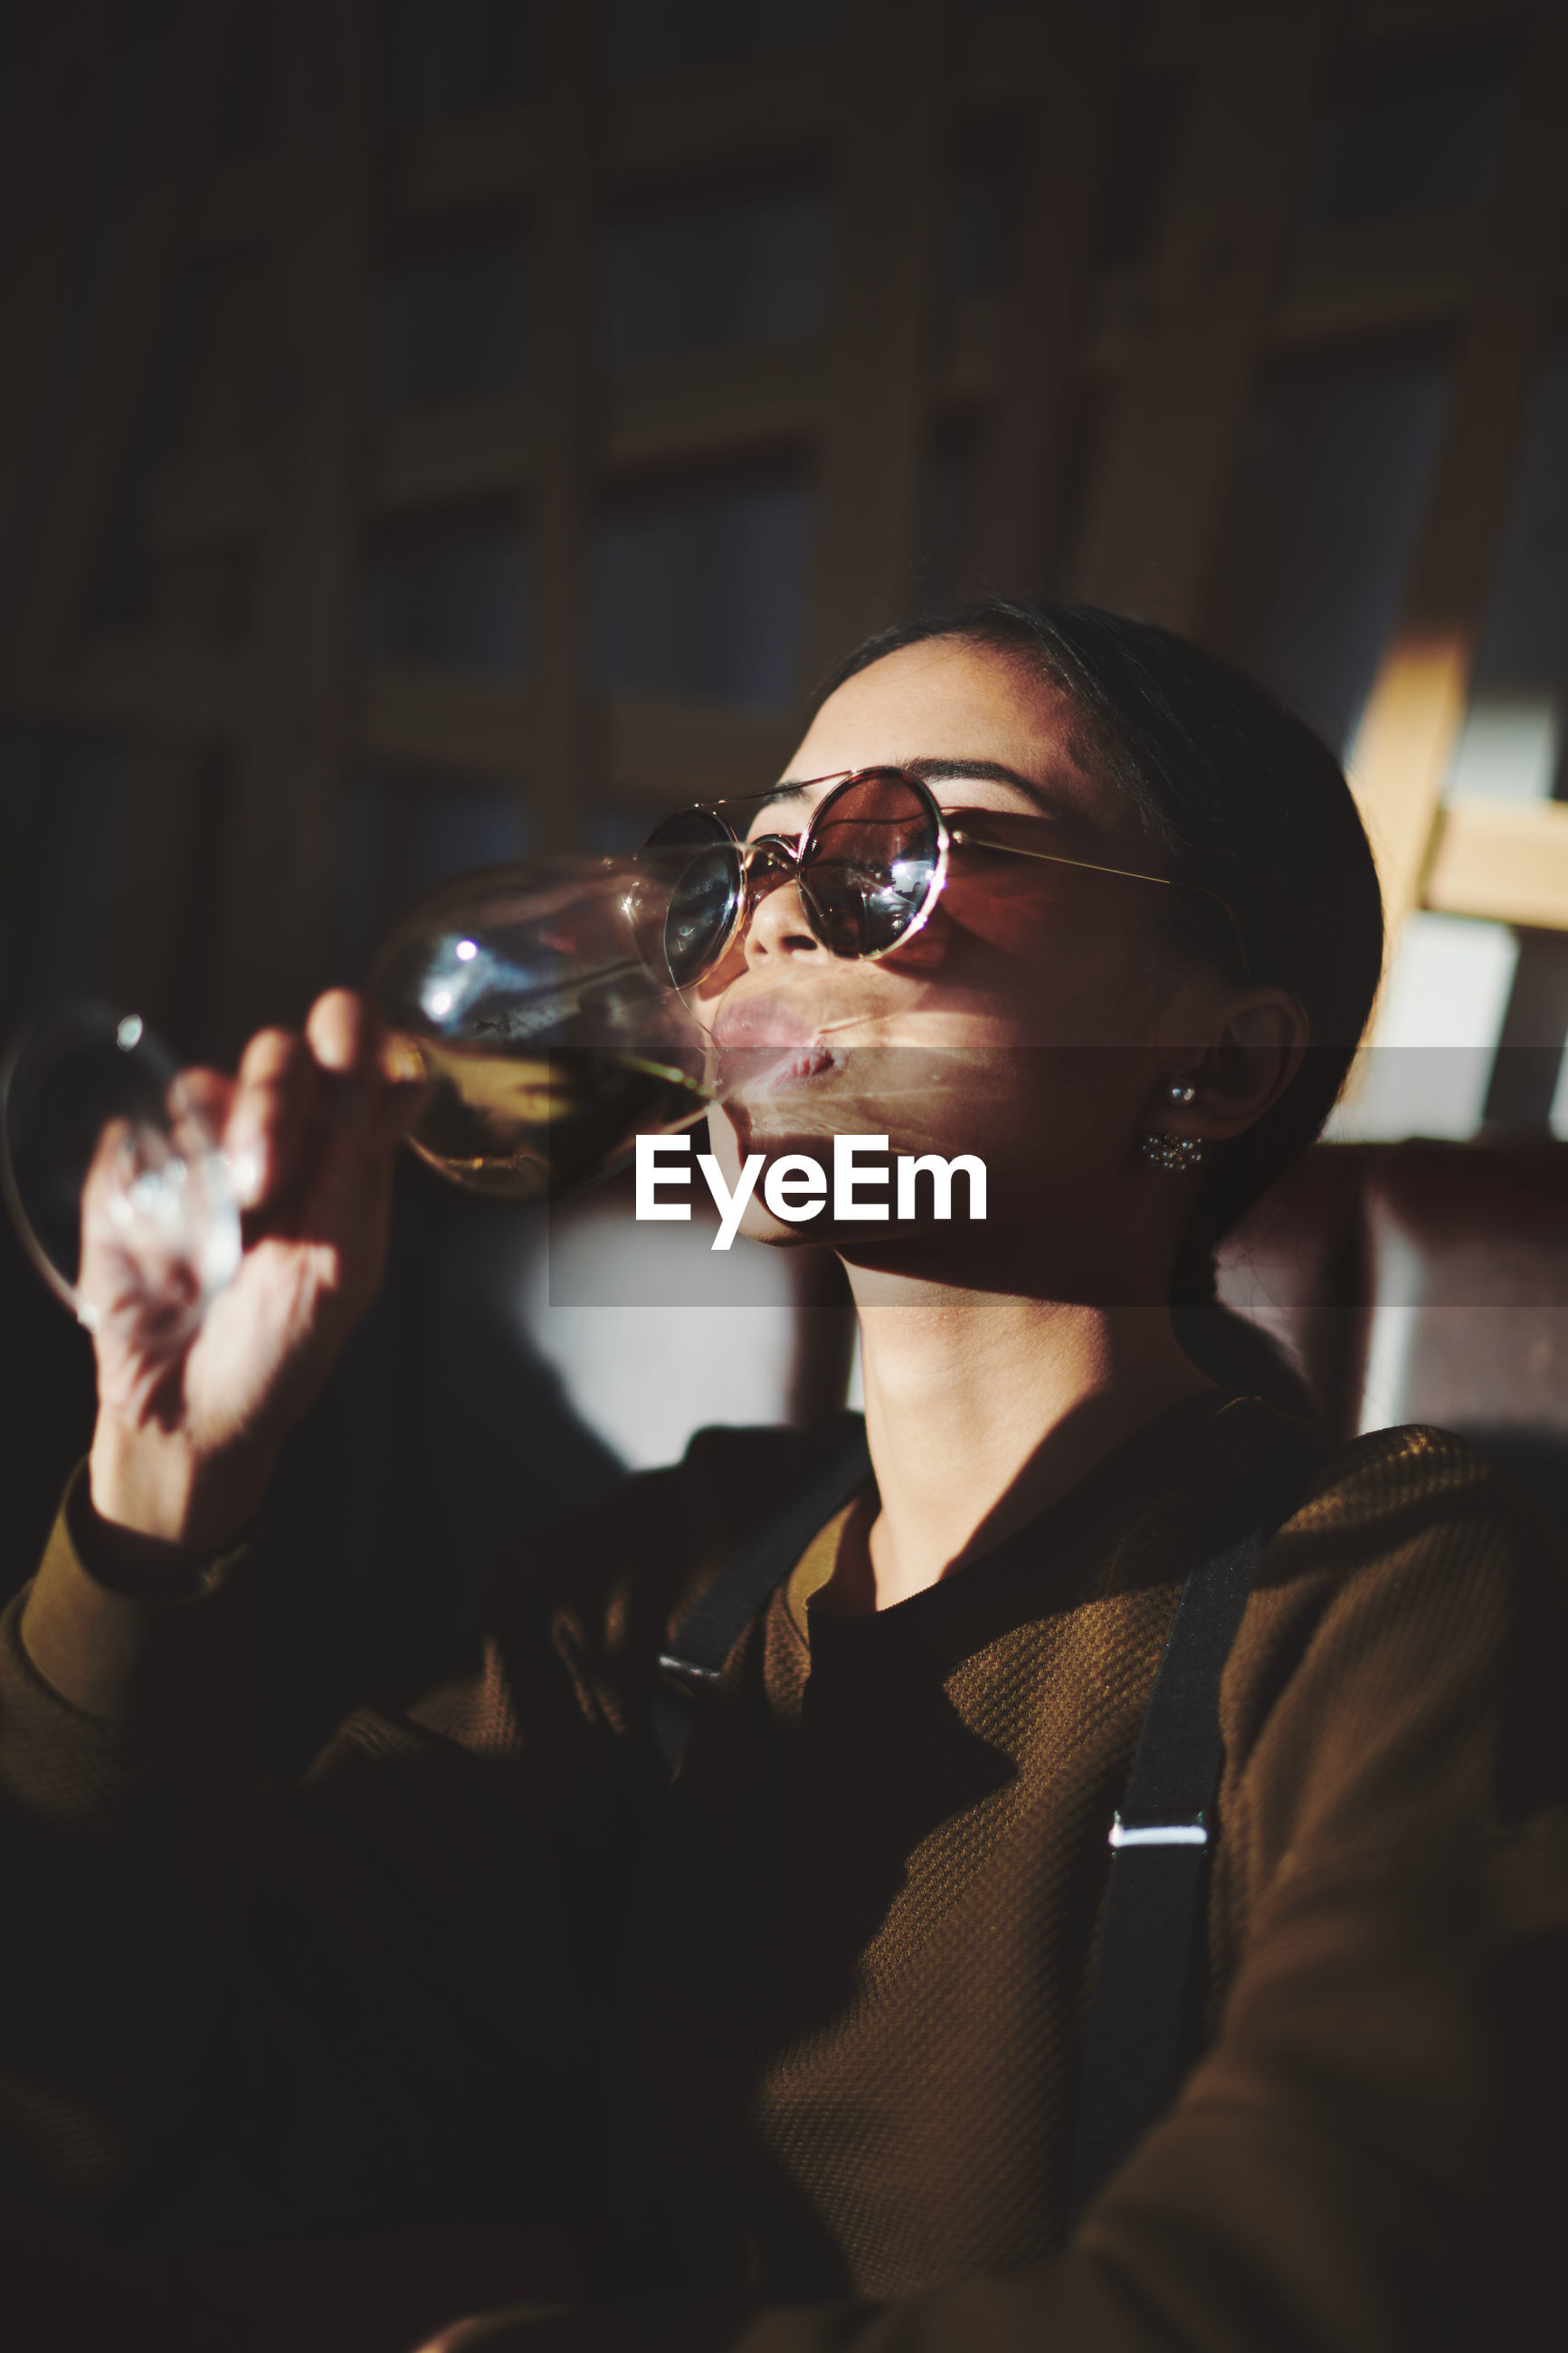 glasses, adult, one person, drink, black, holding, sunglasses, fashion, refreshment, drinking, women, young adult, person, food and drink, lifestyles, portrait, indoors, vision care, alcohol, glass, leisure activity, human face, singing, men, sitting, waist up, clothing, night, goggles, female, looking, eyewear, business